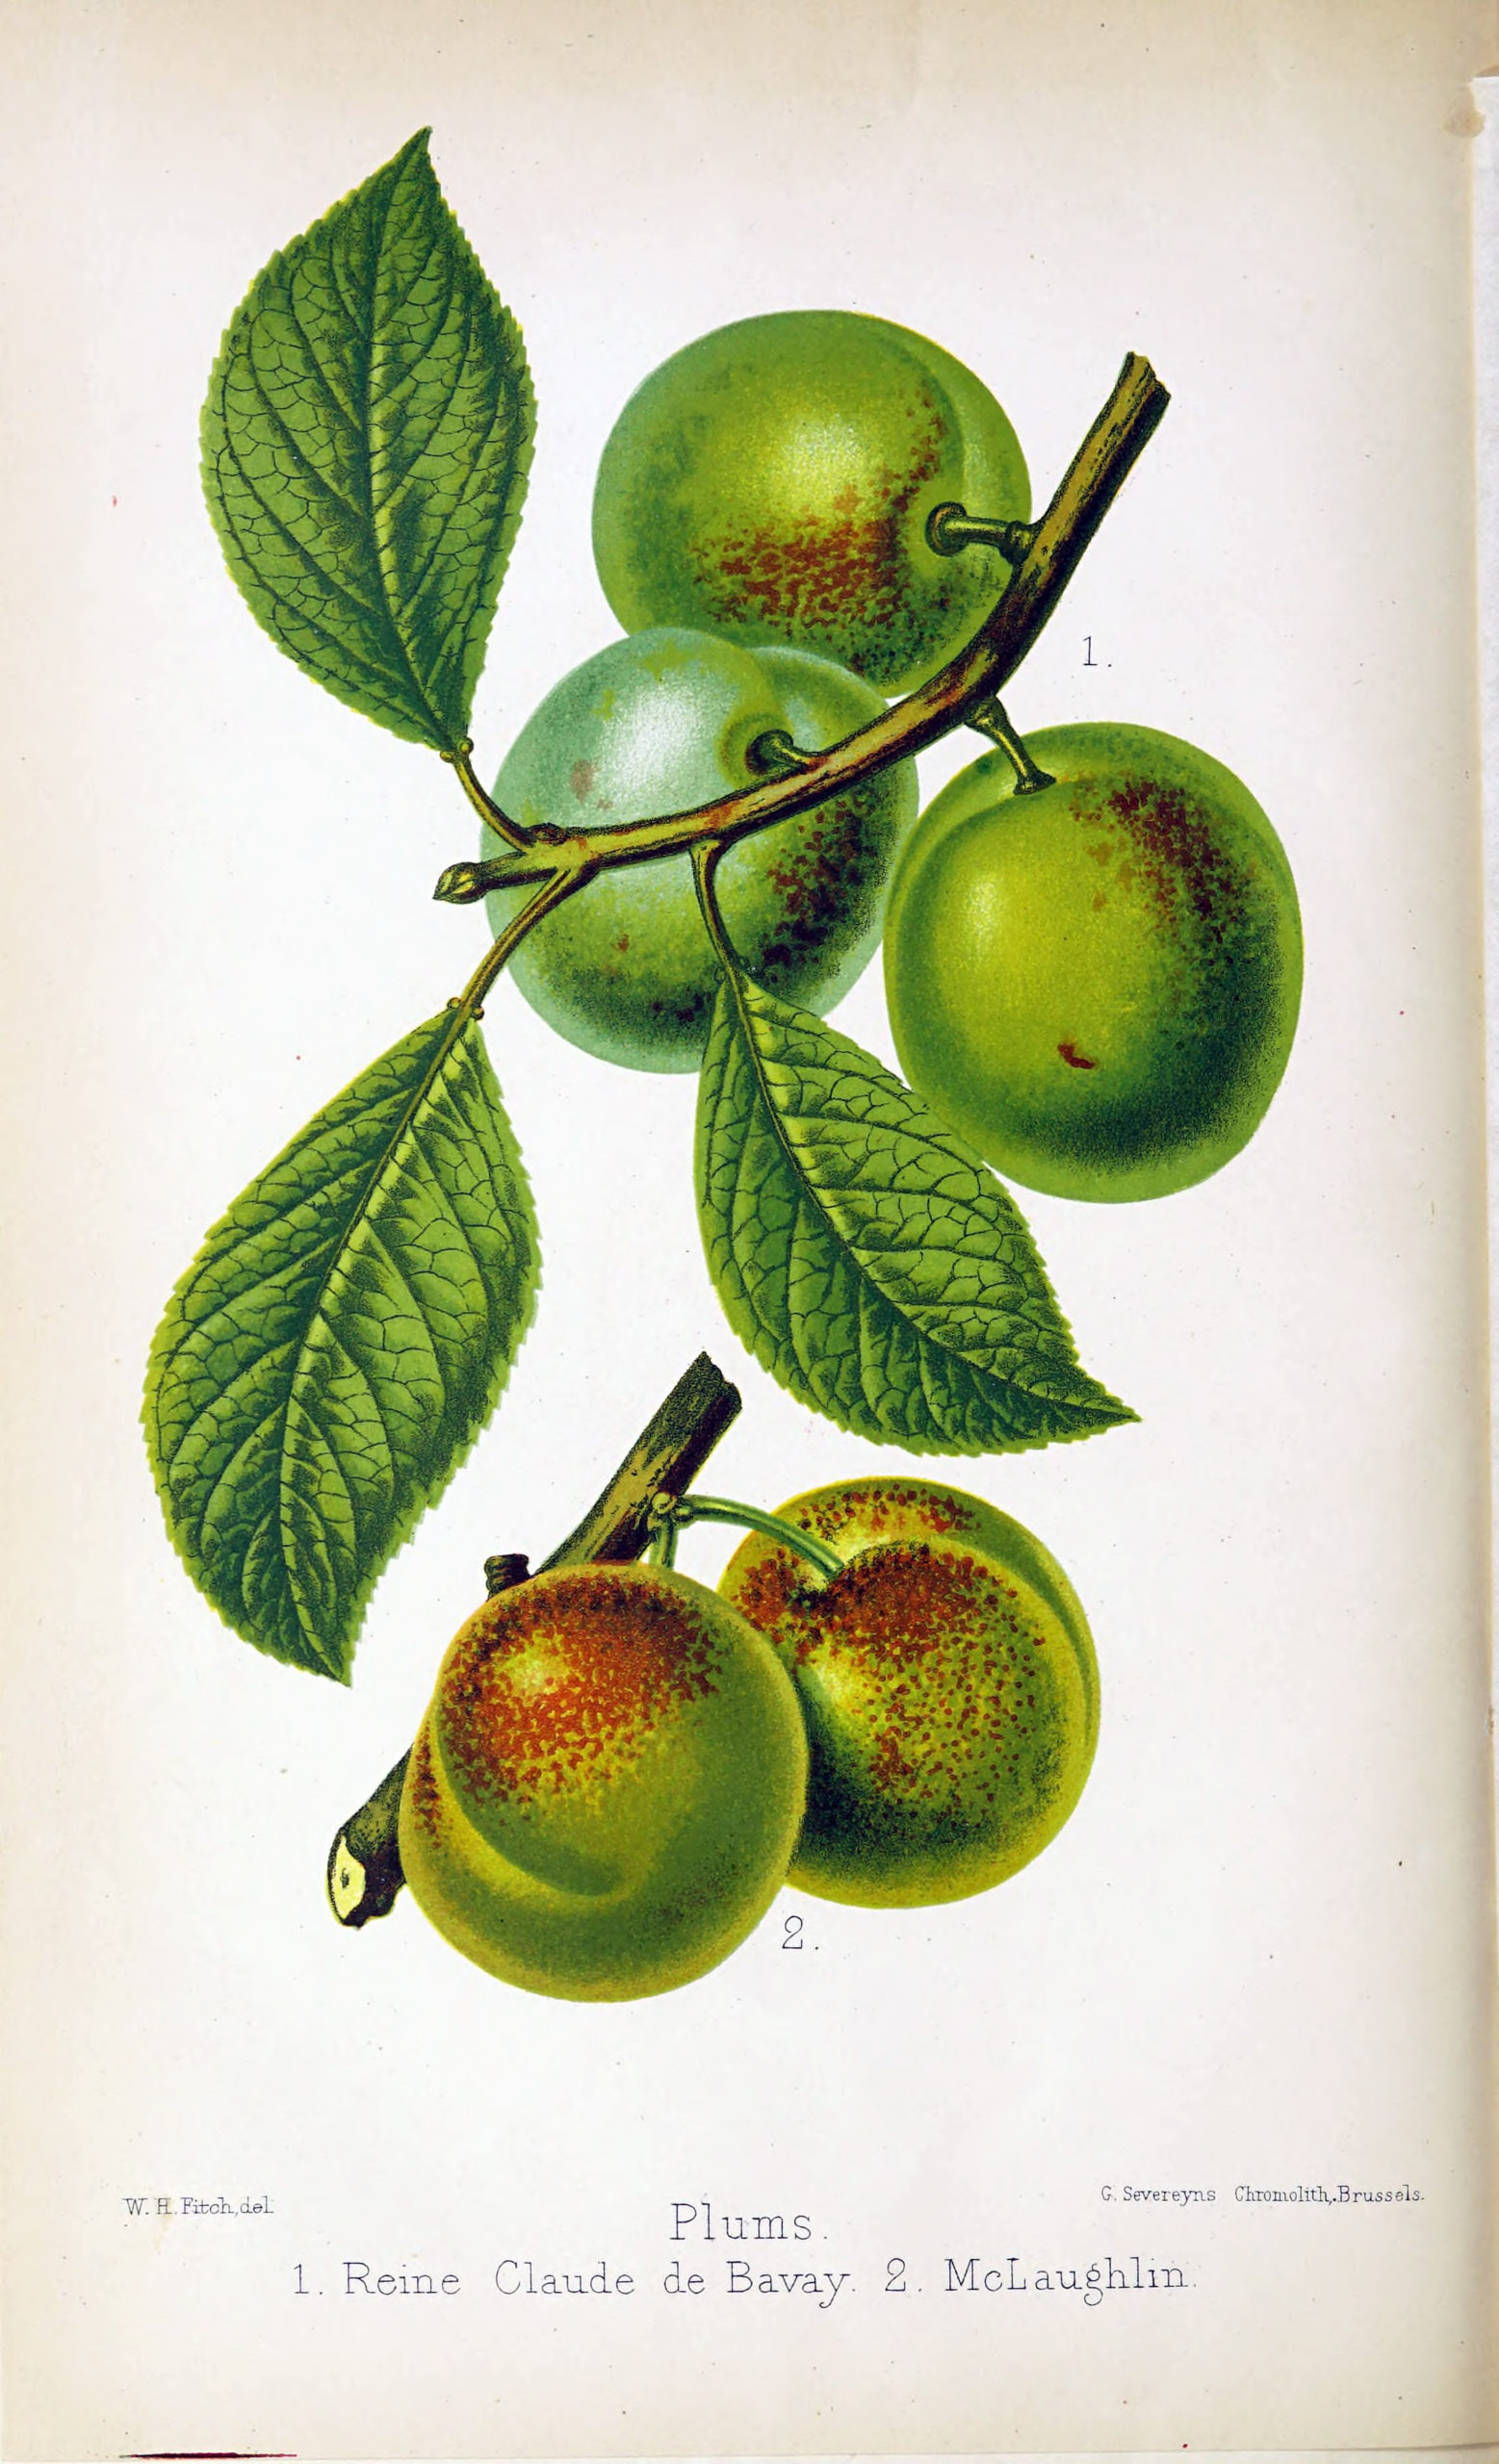 Vintage Botanical Prints - 46 in a series -  Plums: Reine Claude de Bavay and McLaughlin from The florist and pomologist (1879)